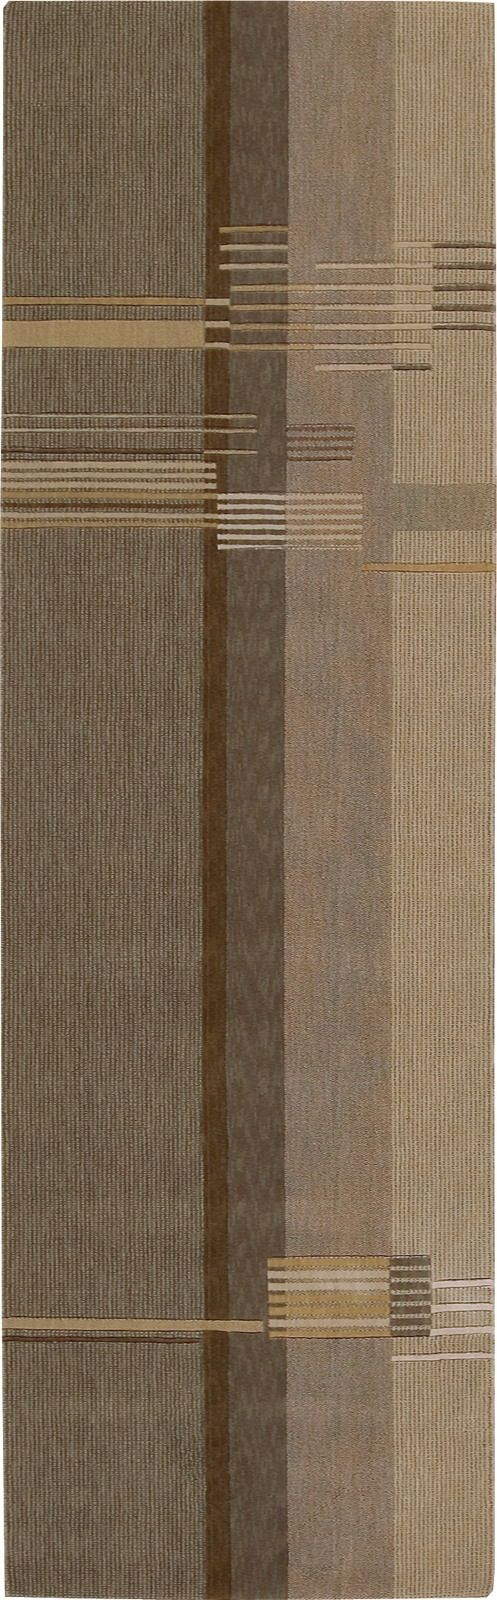 calvin klein ck11 - loom select contemporary area rug collection